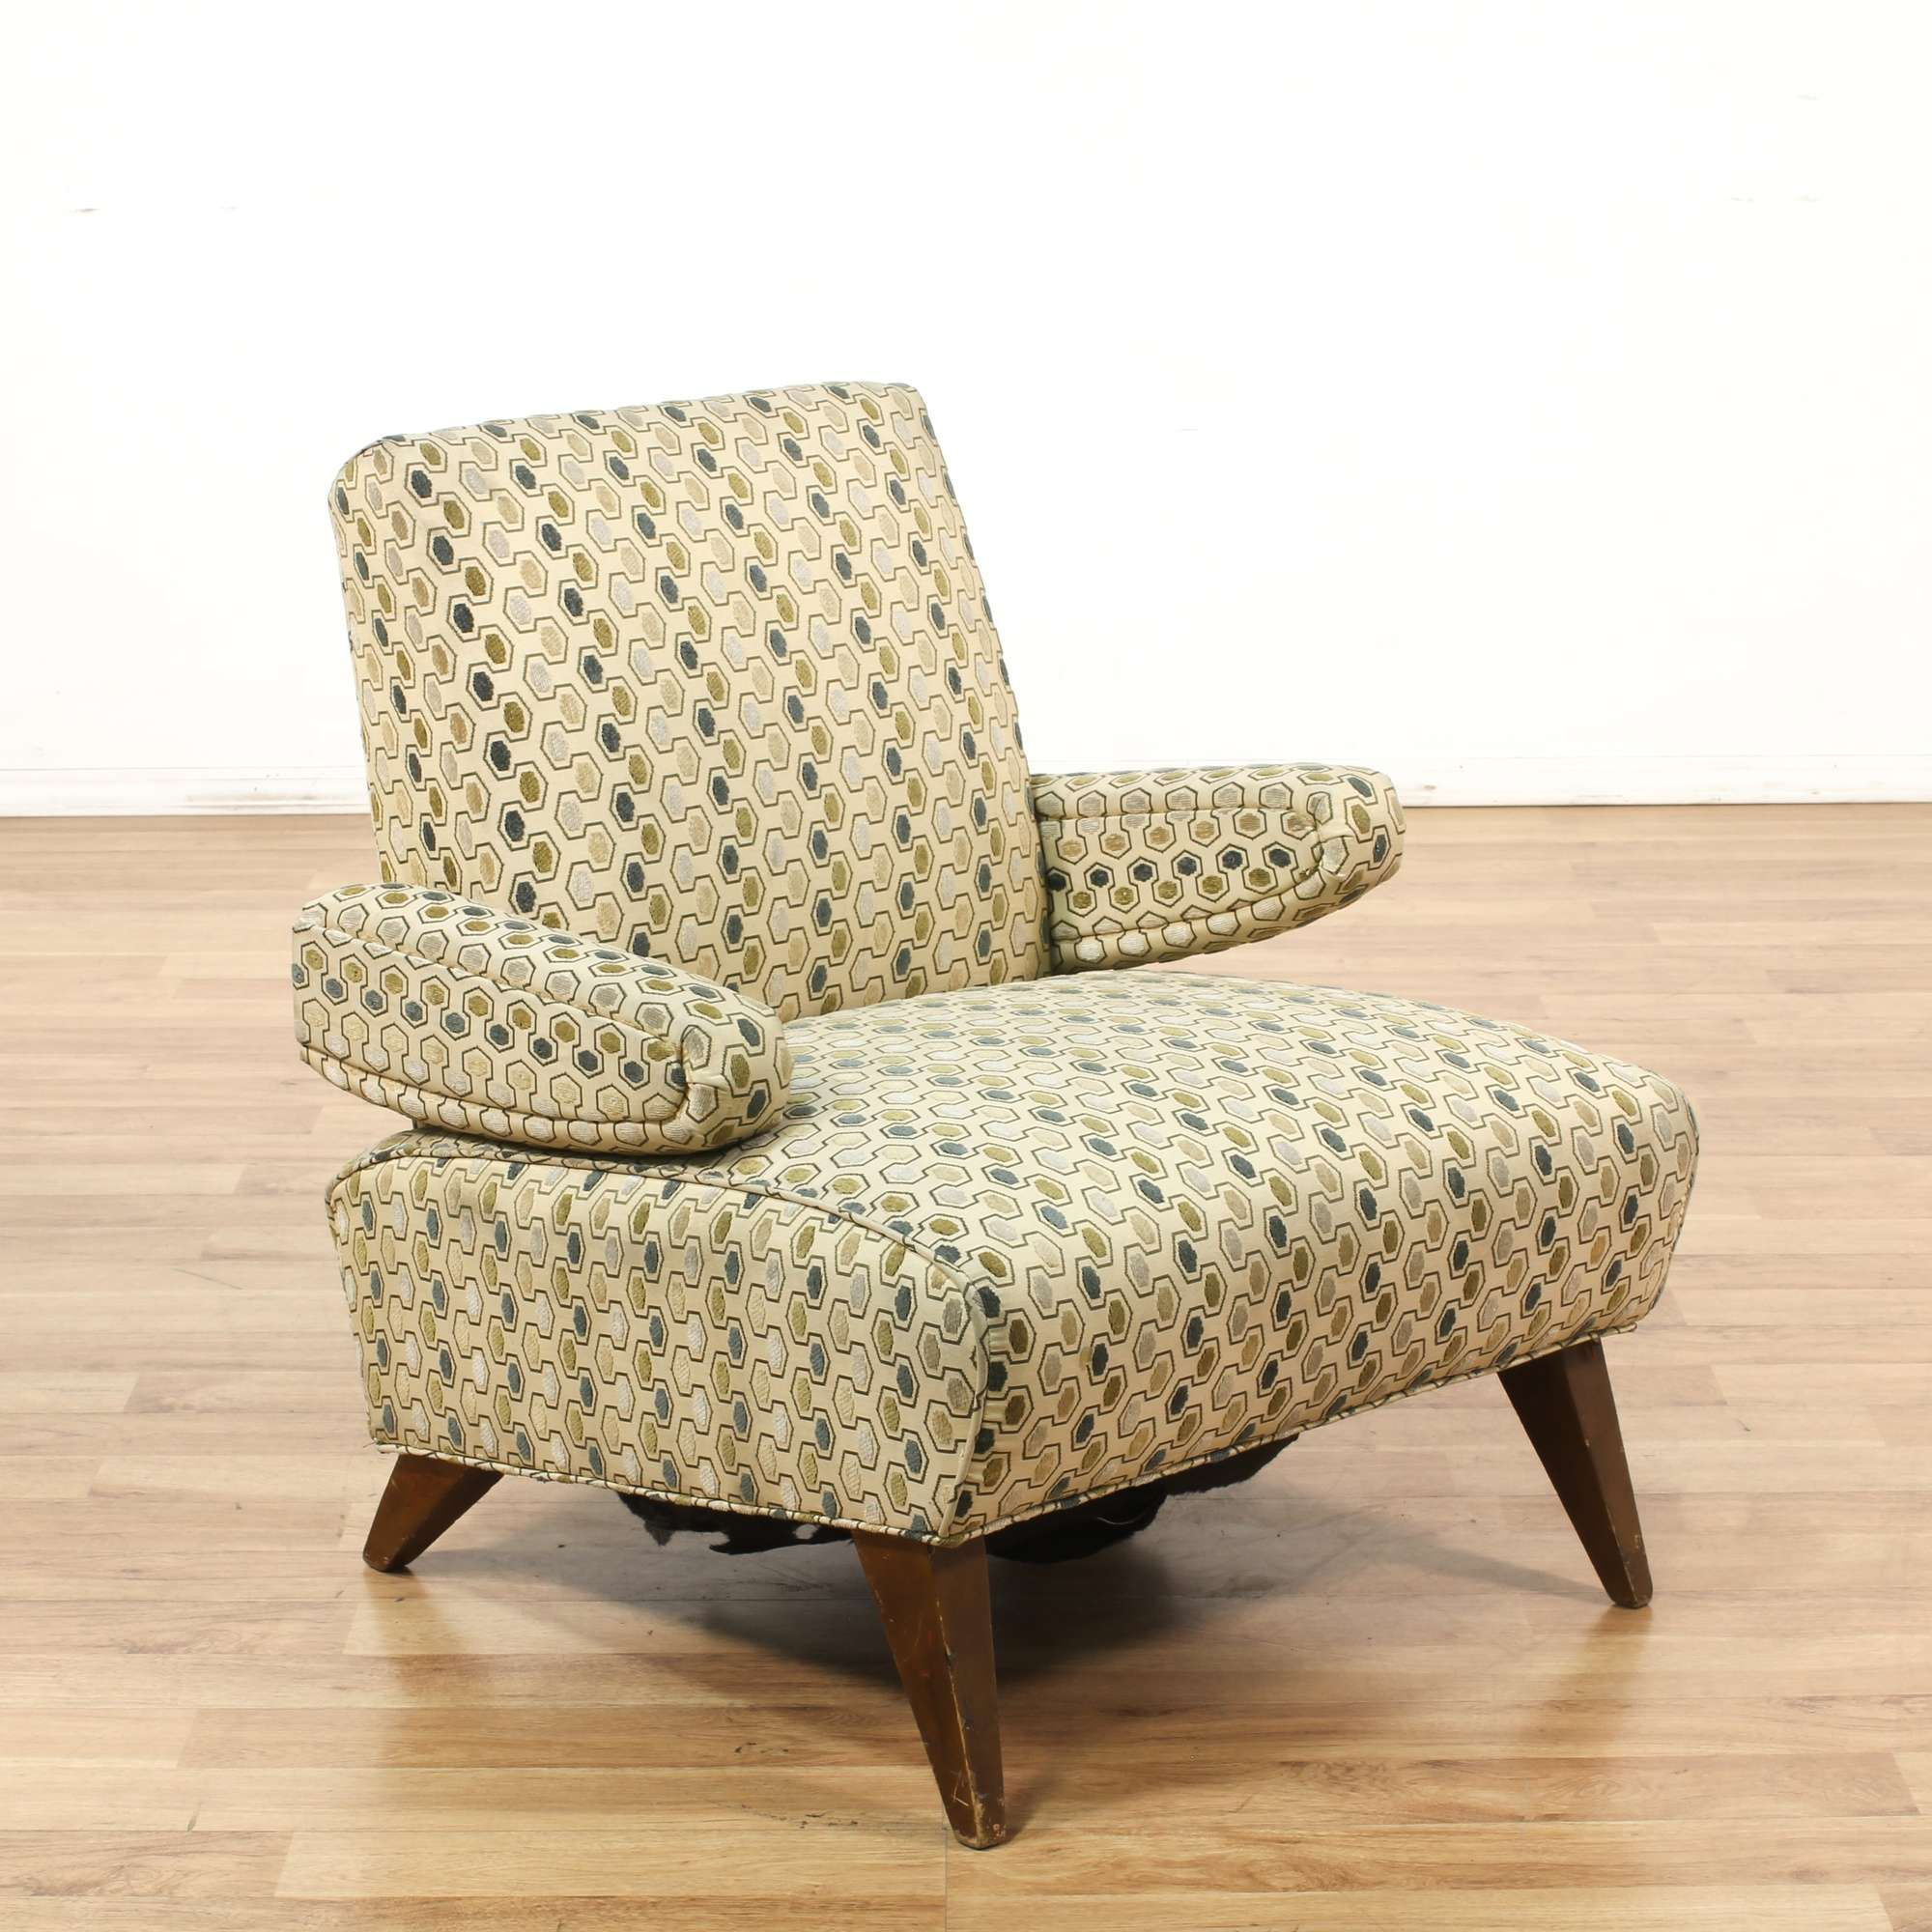 furniture armchair chair angeles pattern frame w wood oversized upholstery patterned arm loveseat i los vintage large